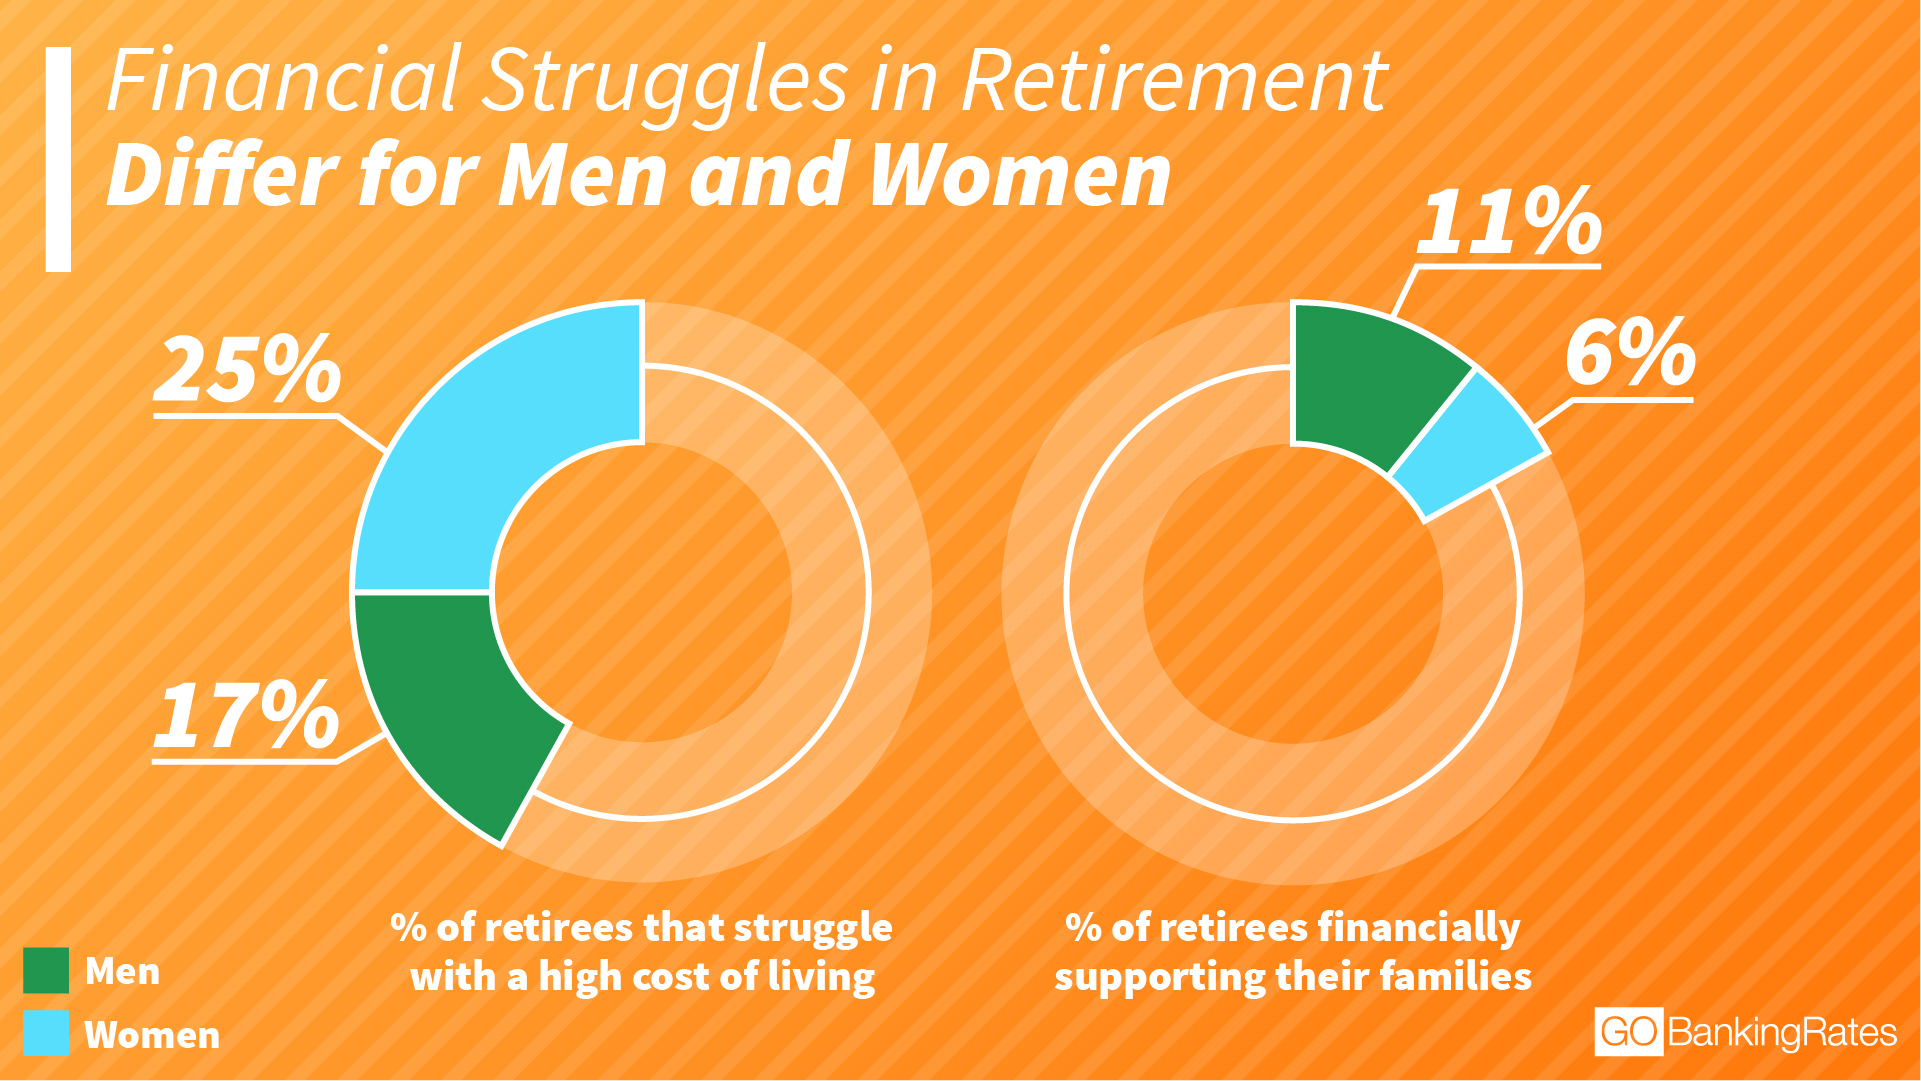 financial struggles of men and women